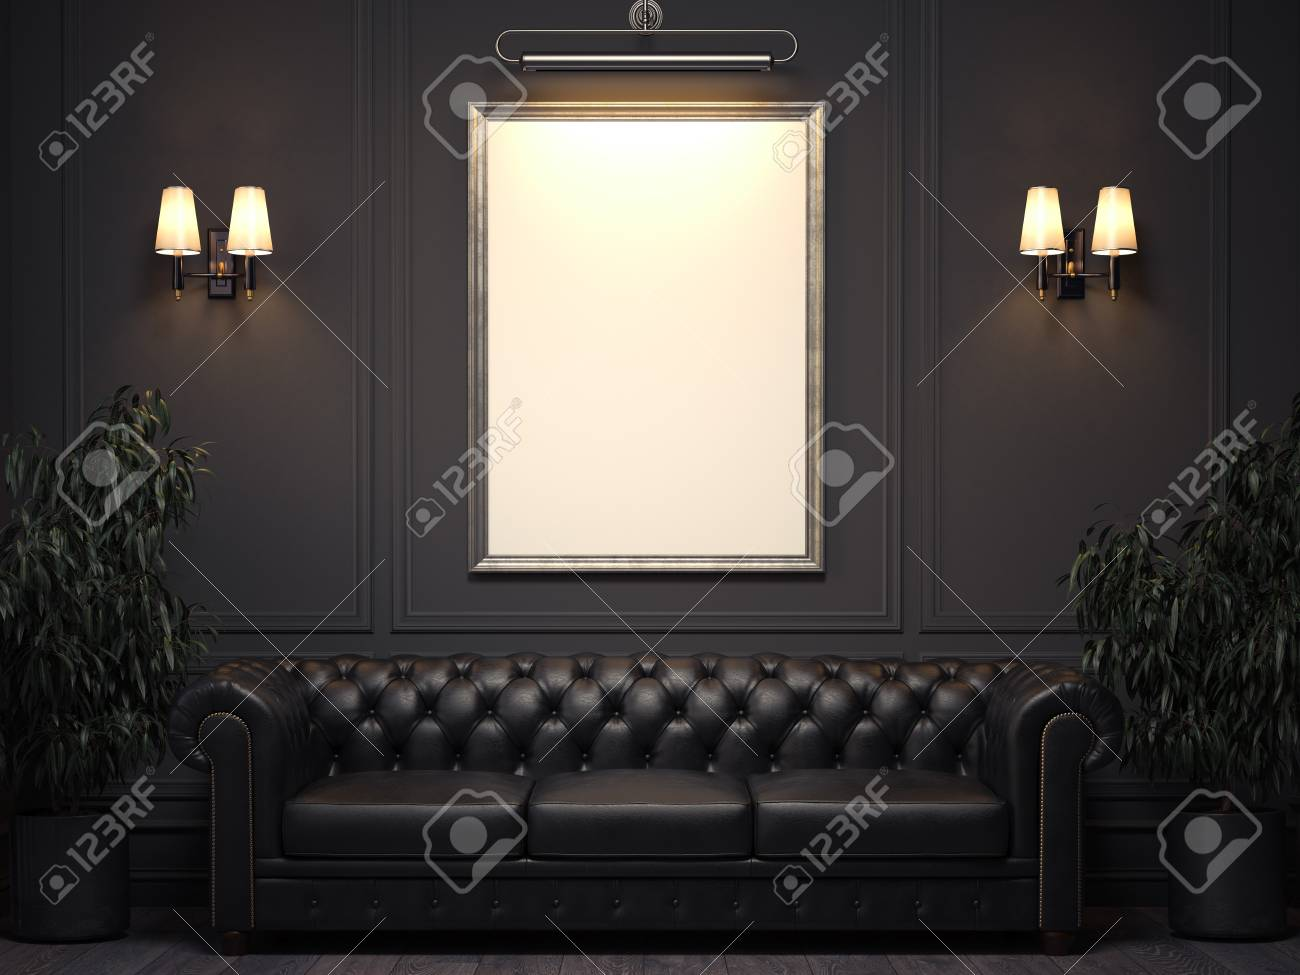 Dark classic interior with sofa and picture frame on wall. 3d rendering - 98717590